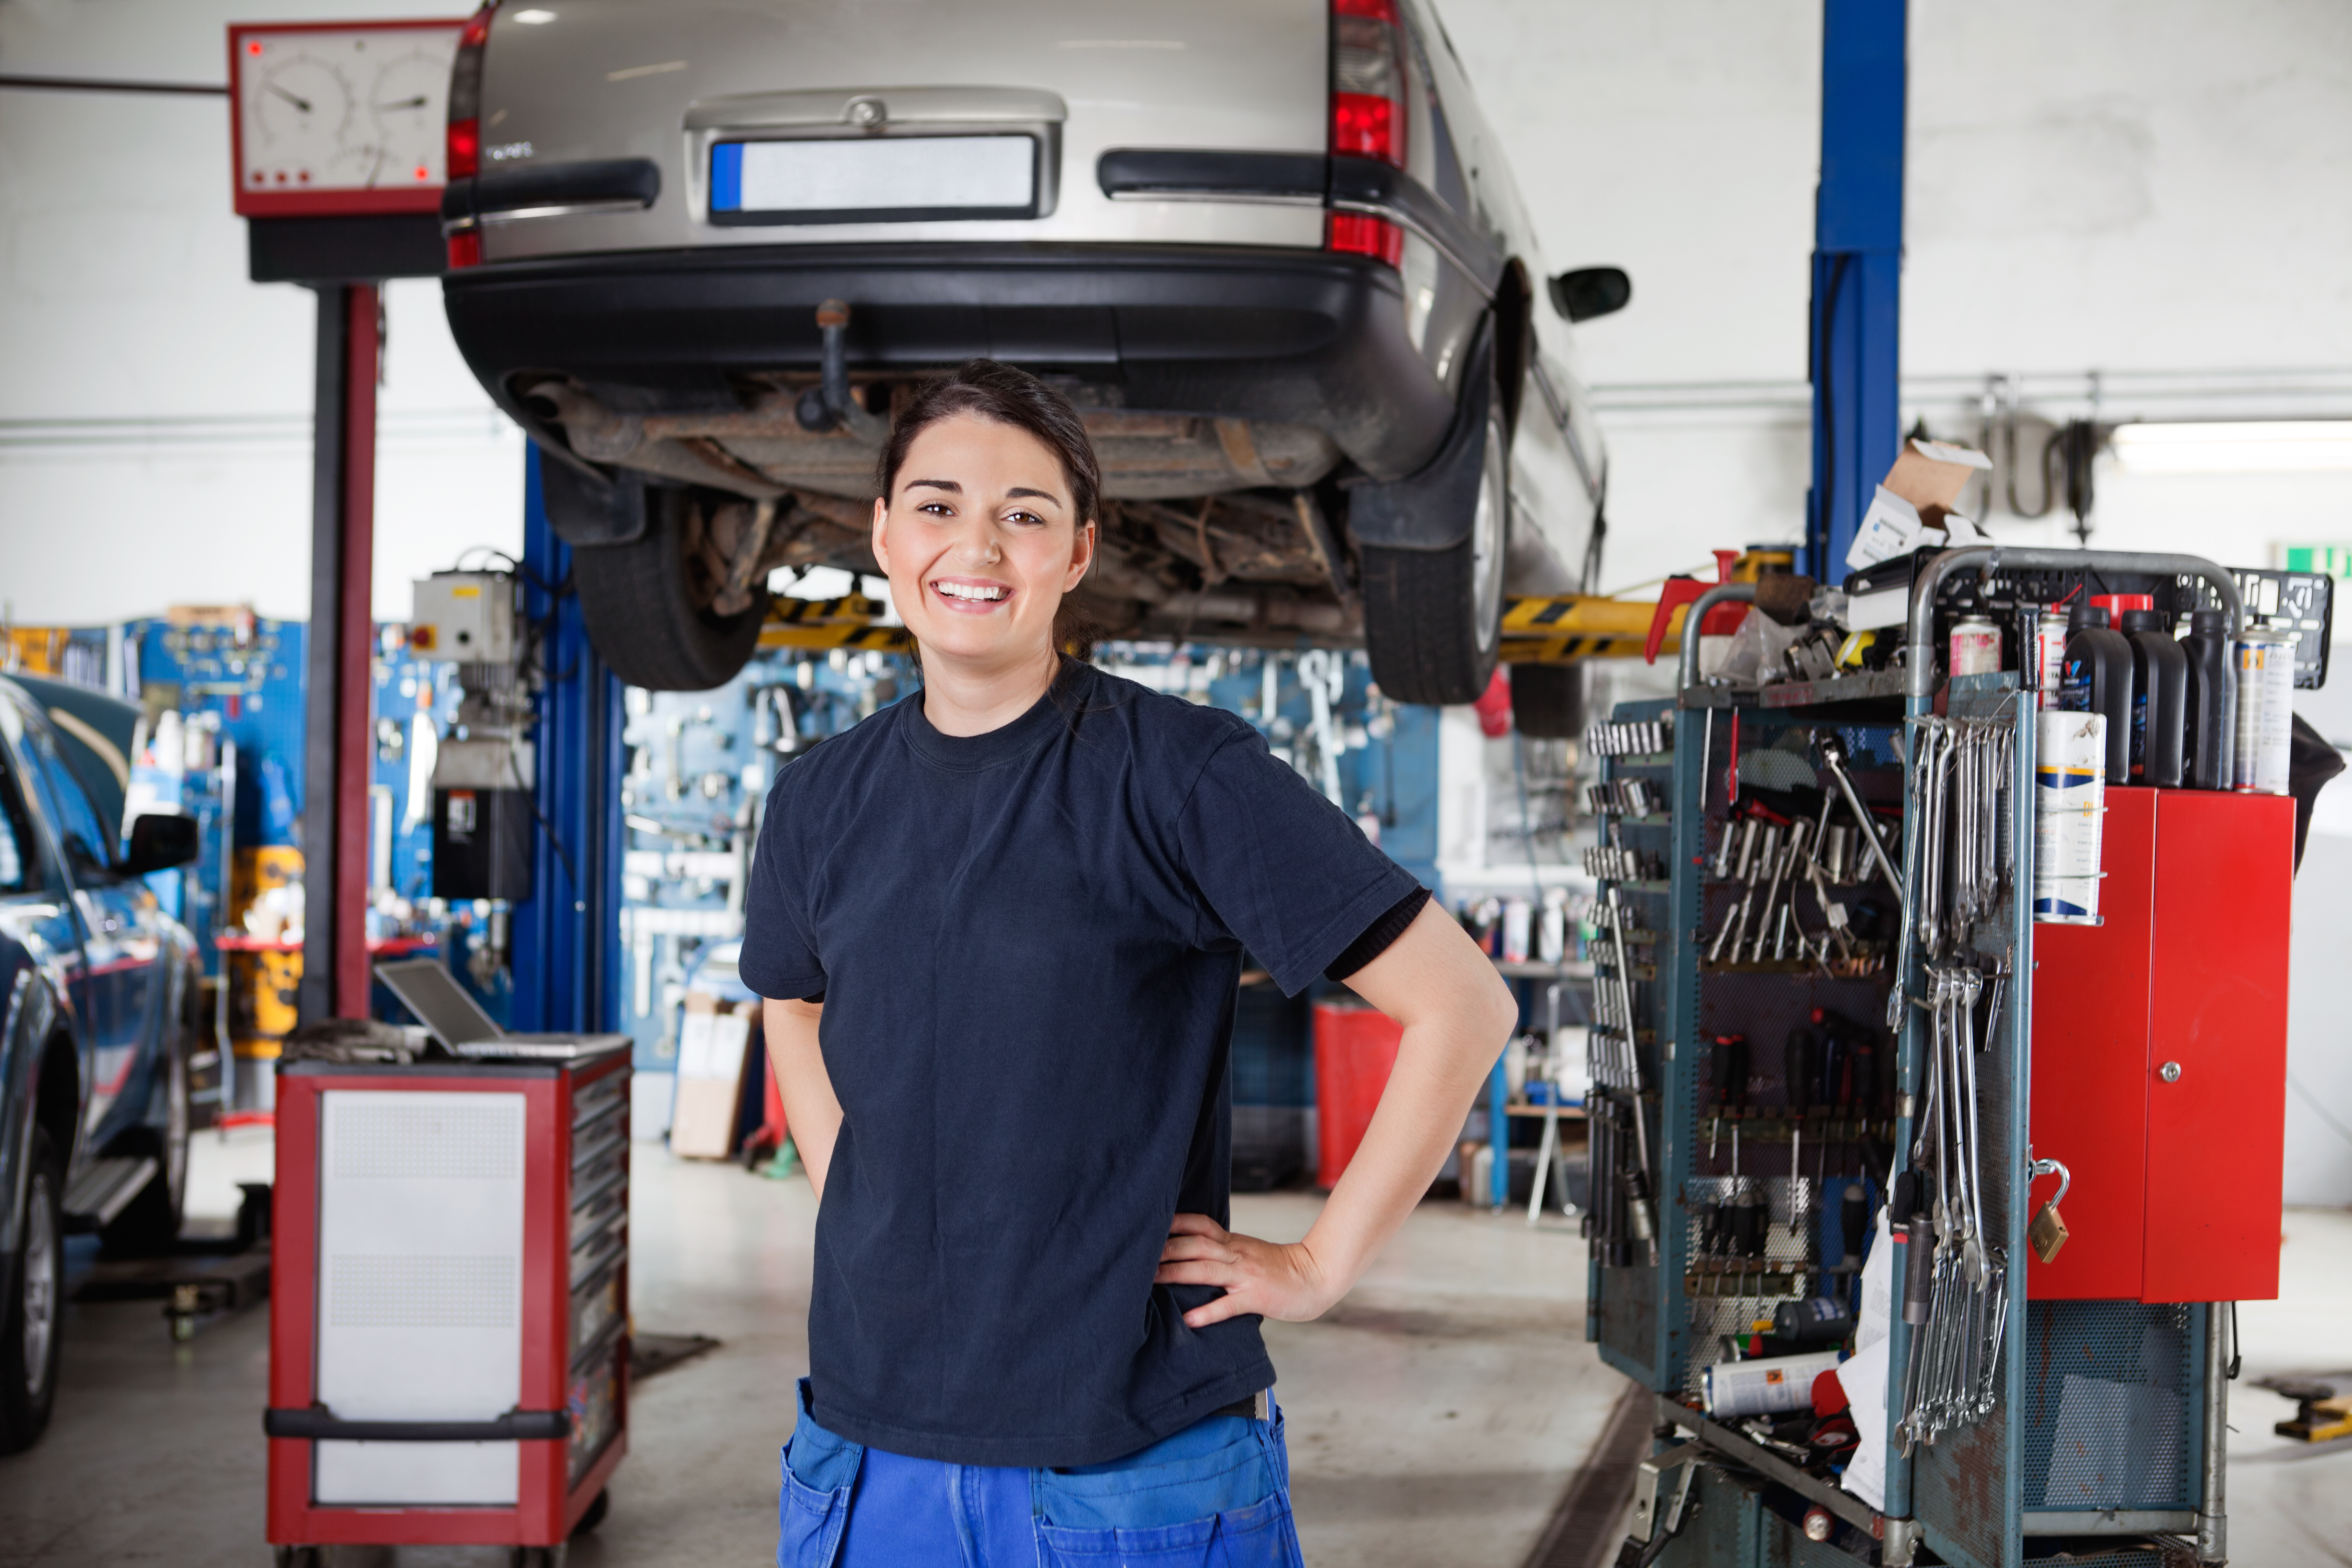 1930239-female-mechanic-portrait.jpg